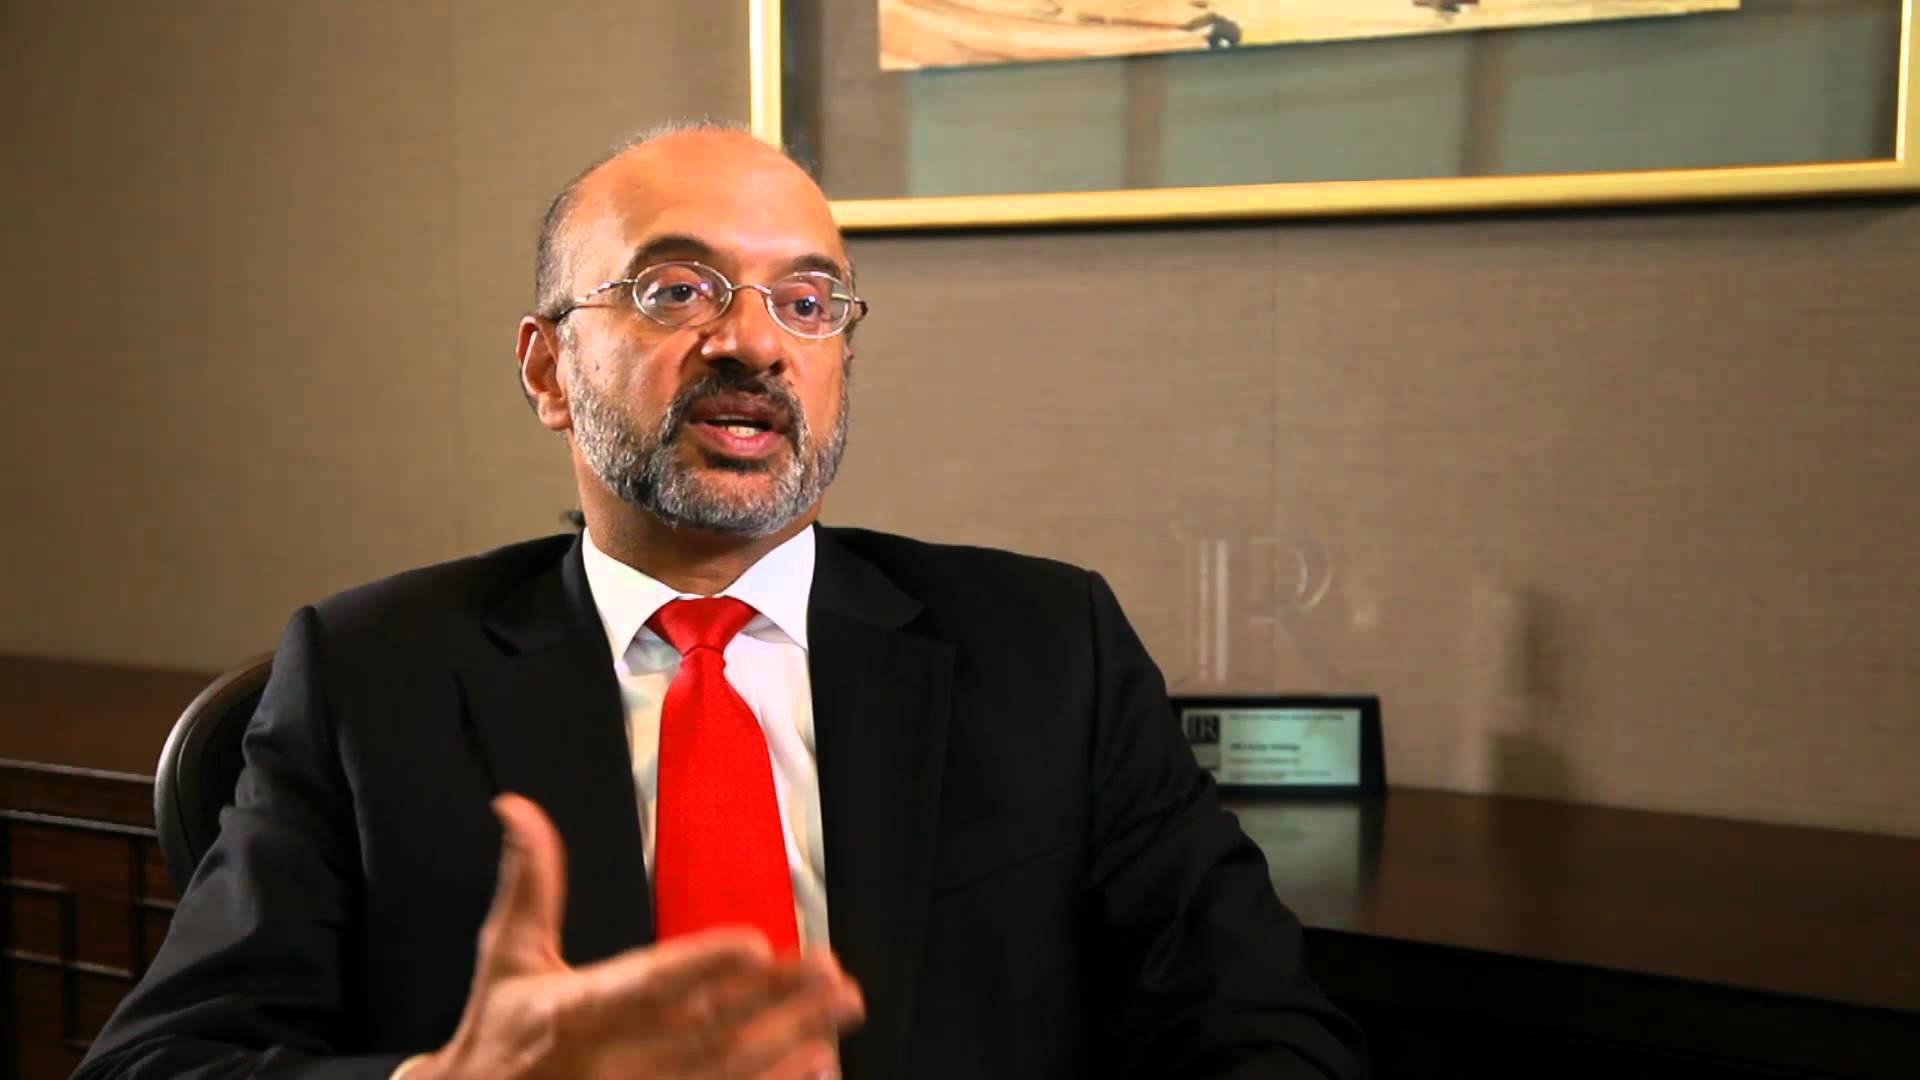 Piyush Gupta, CEO of DBS. Photo courtesy: Youtube